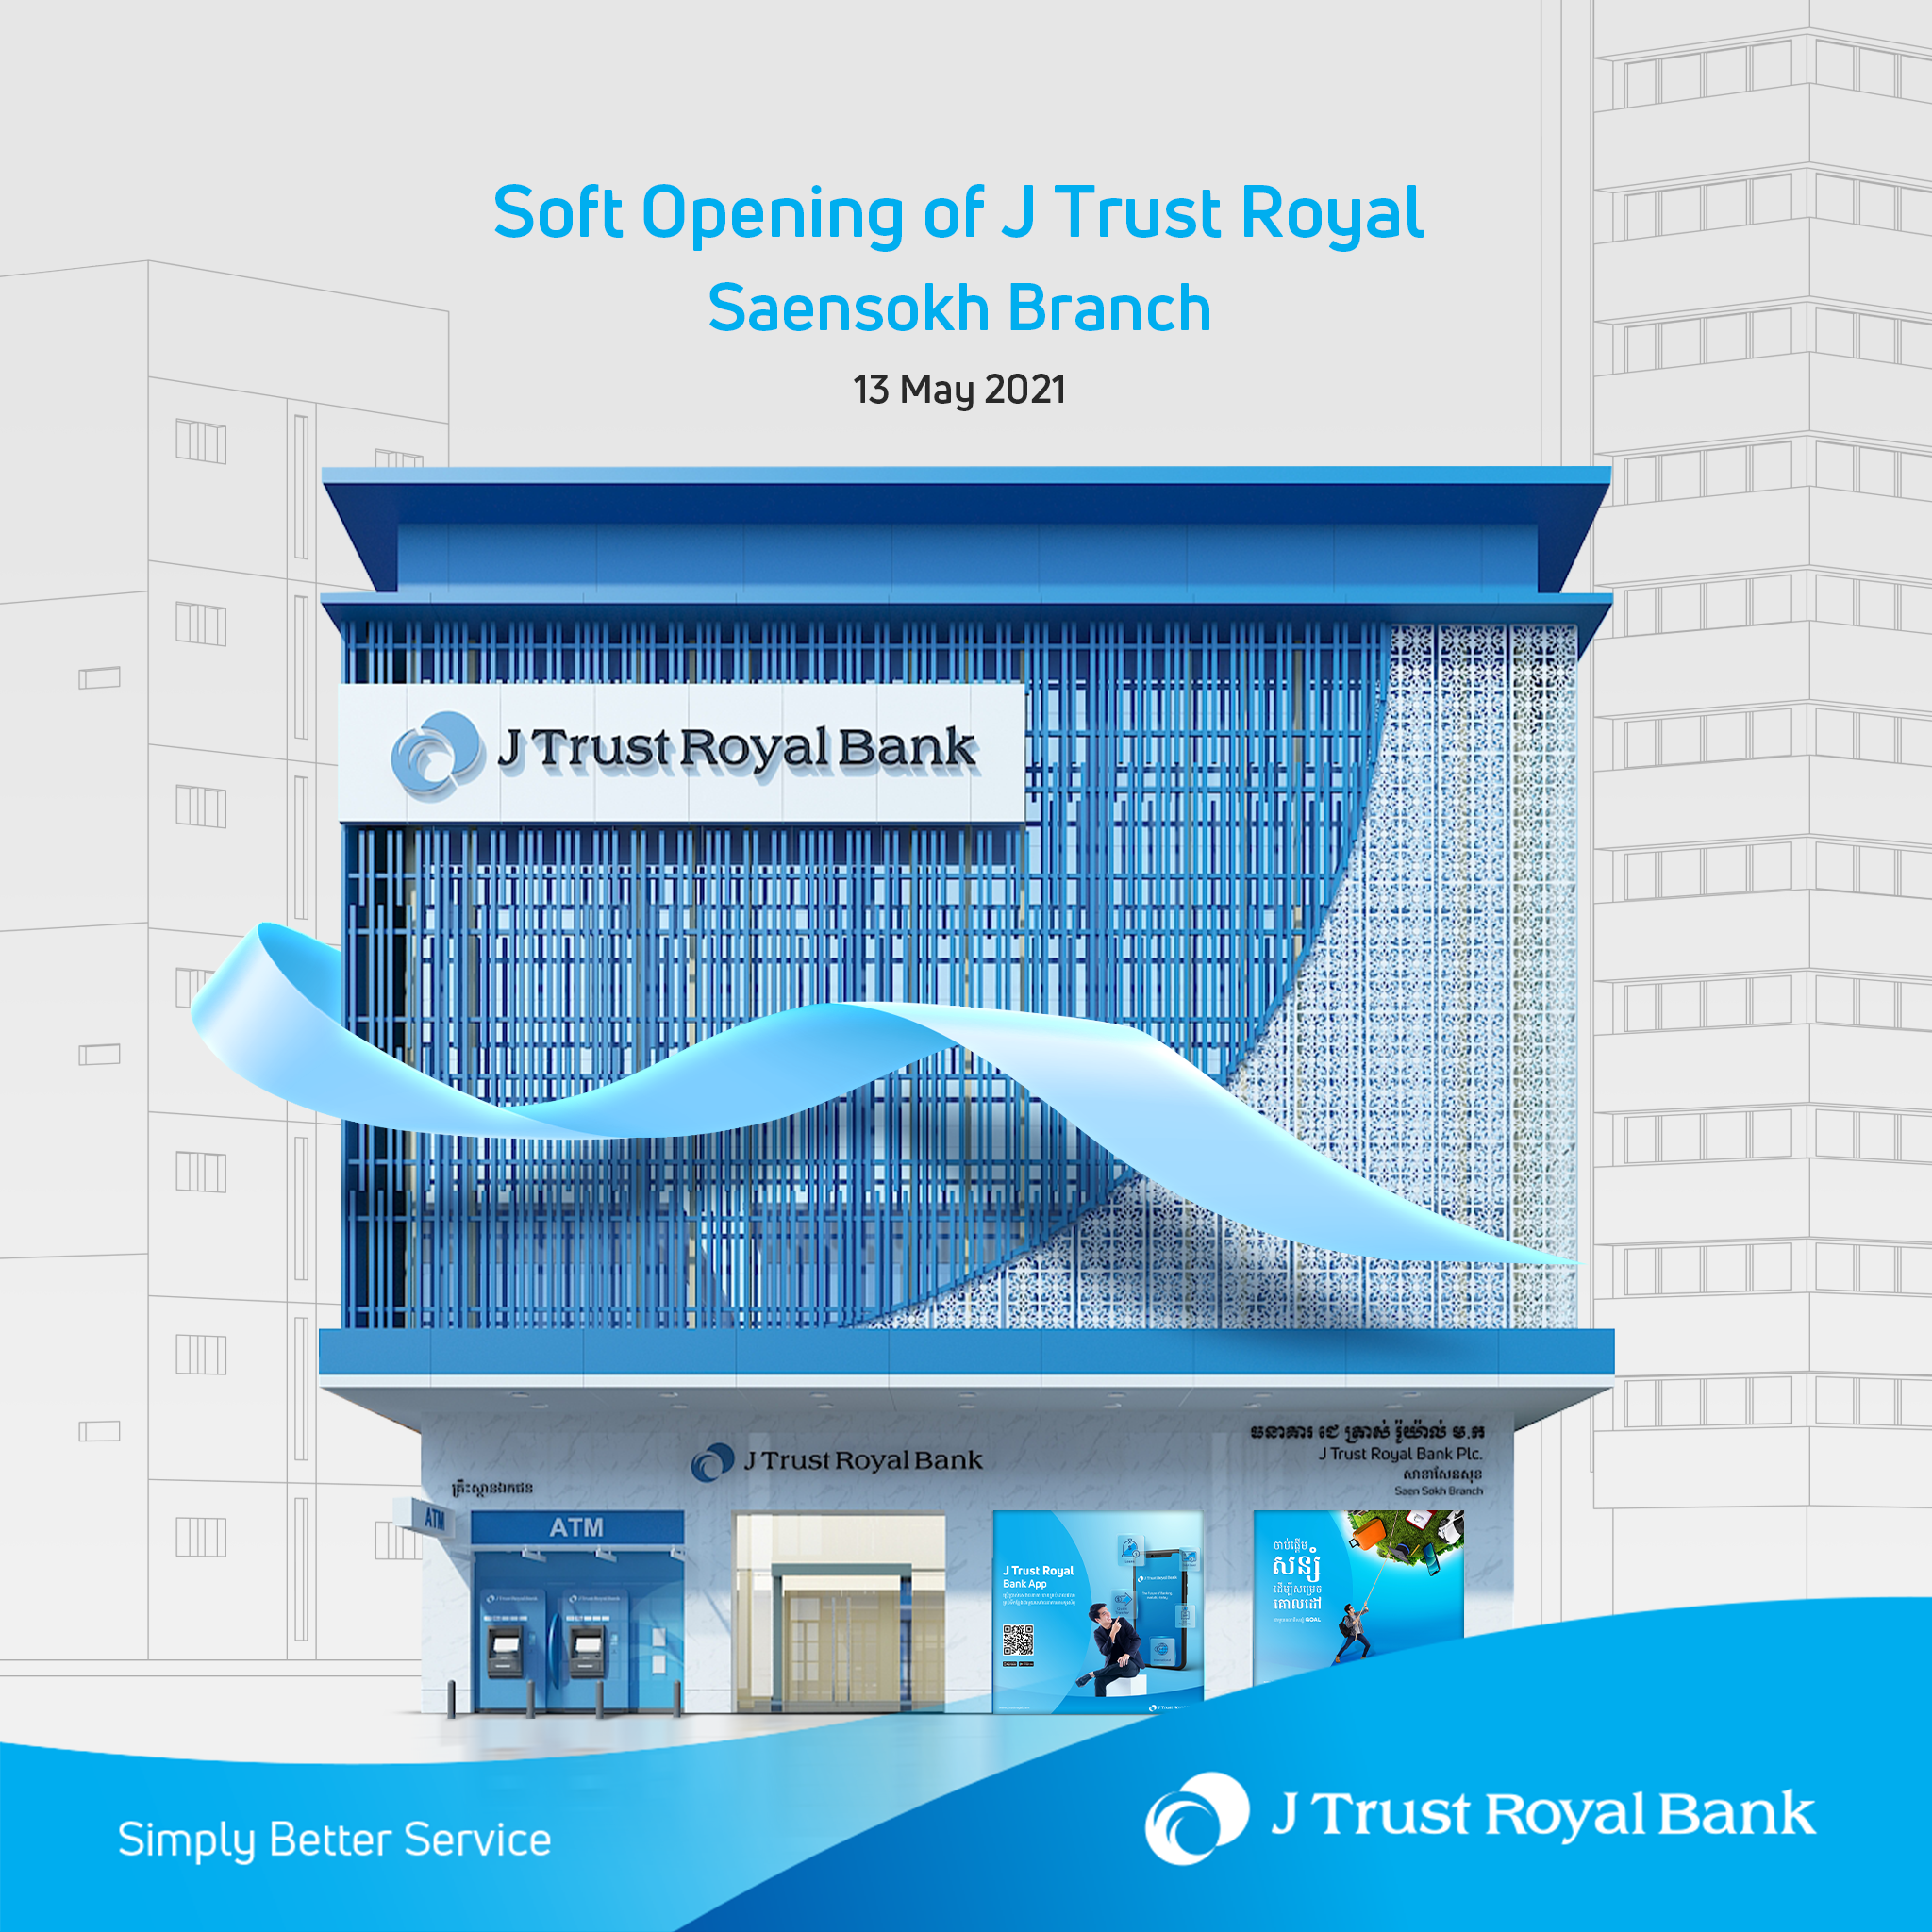 J Trust Royal Bank opens its new designed branch located at Saensokh